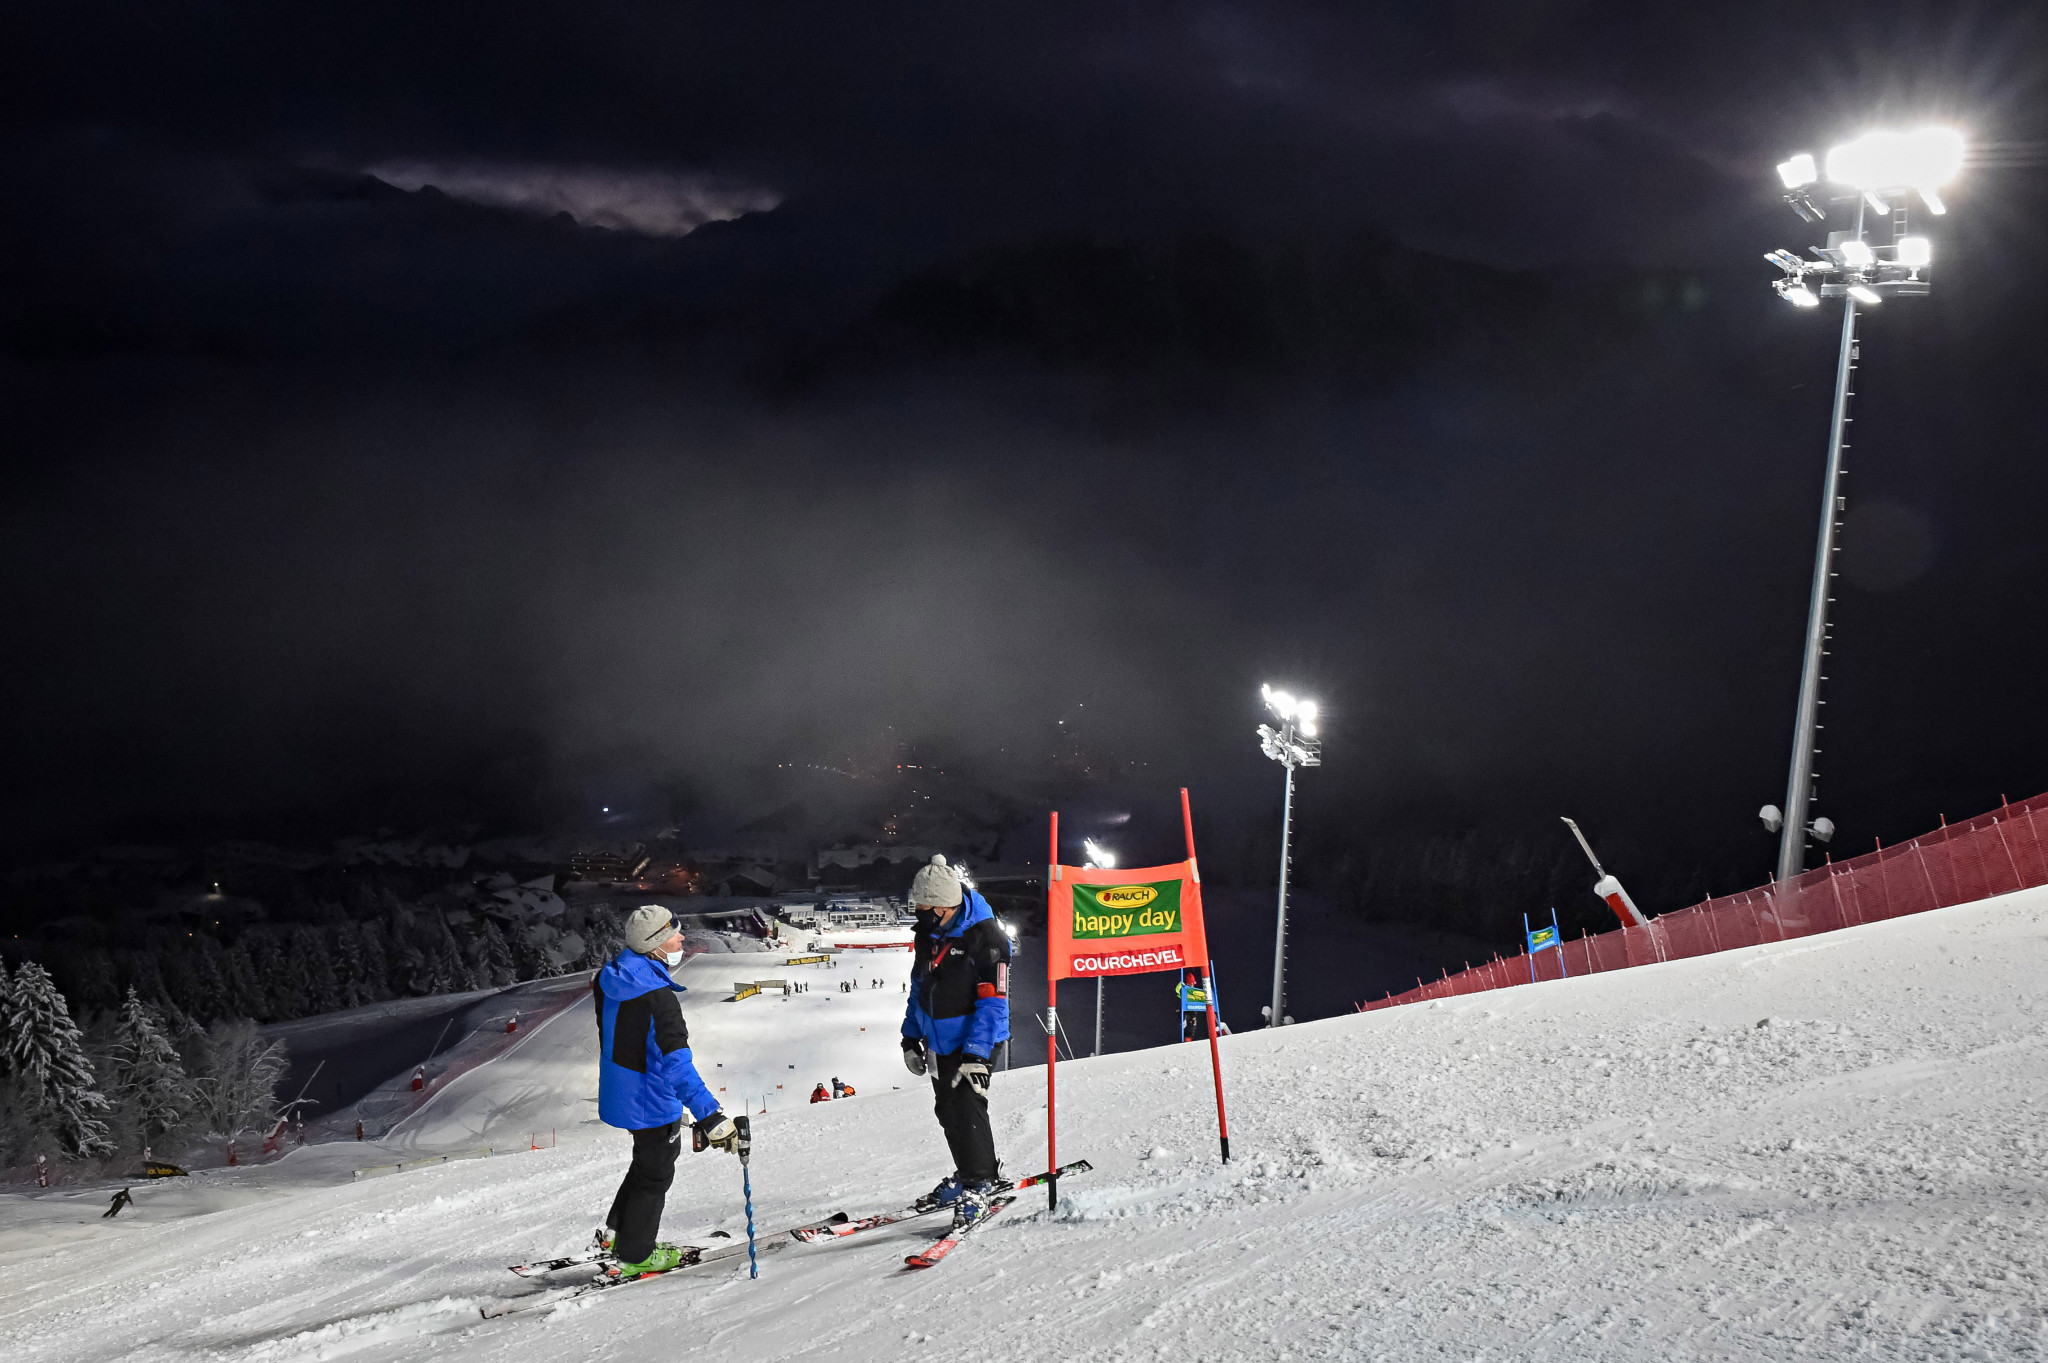 FIS Alpine Ski World Cup race in Courchevel postponed after heavy snowfall